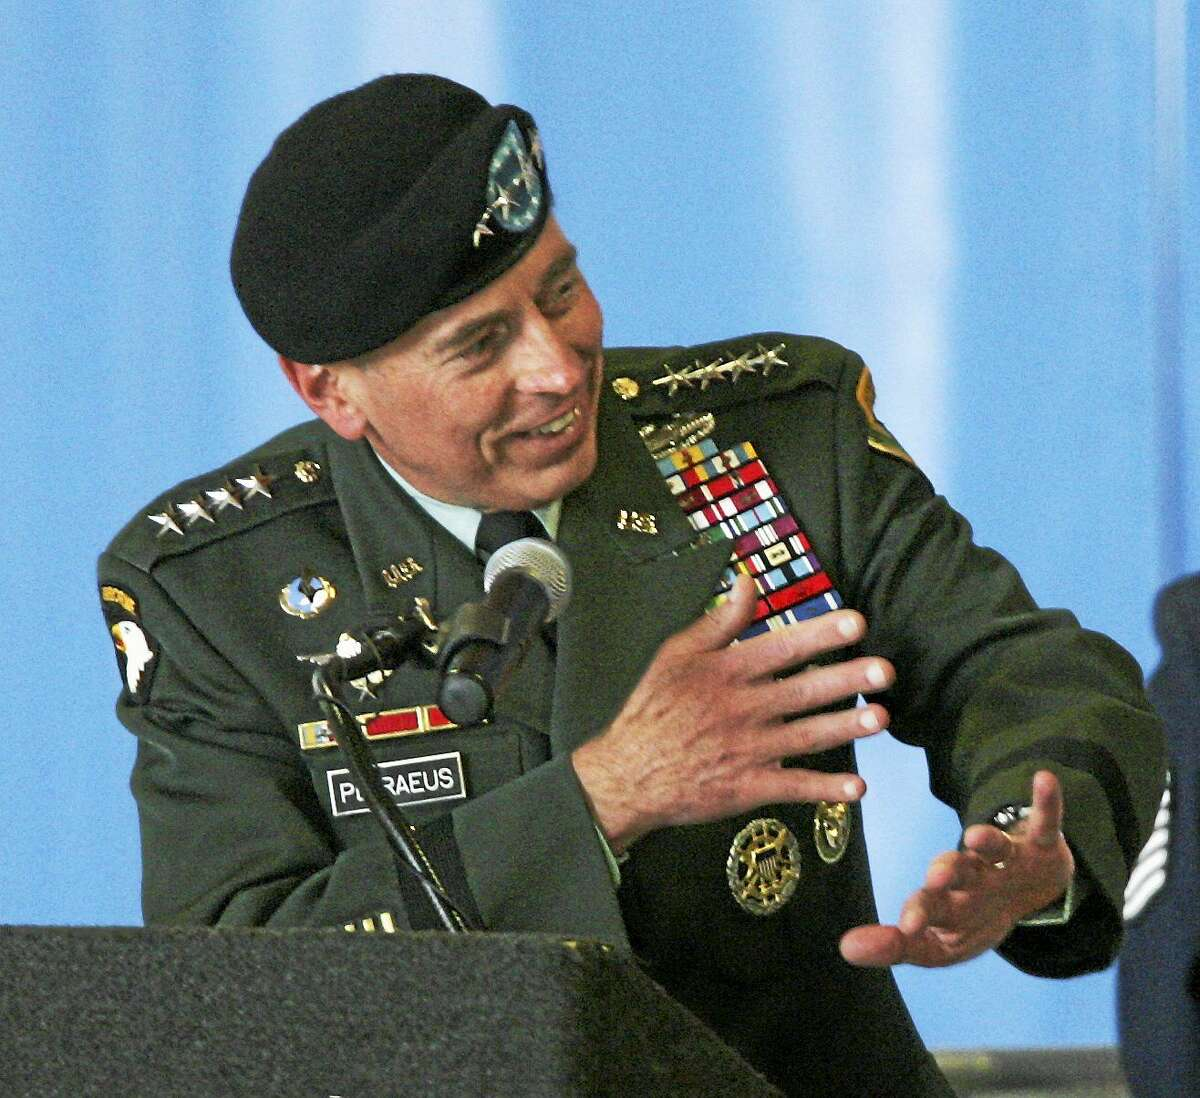 Then-Army Gen David Patraeus gestures as he talks about an old combat story with outgoing Ninth Air Force and U.S. Air Force Central Commander Lt. Gen Gary L. North during change of command ceremonies on Aug. 5, 2009, at Shaw Air Force Base in Sumter, S.C.